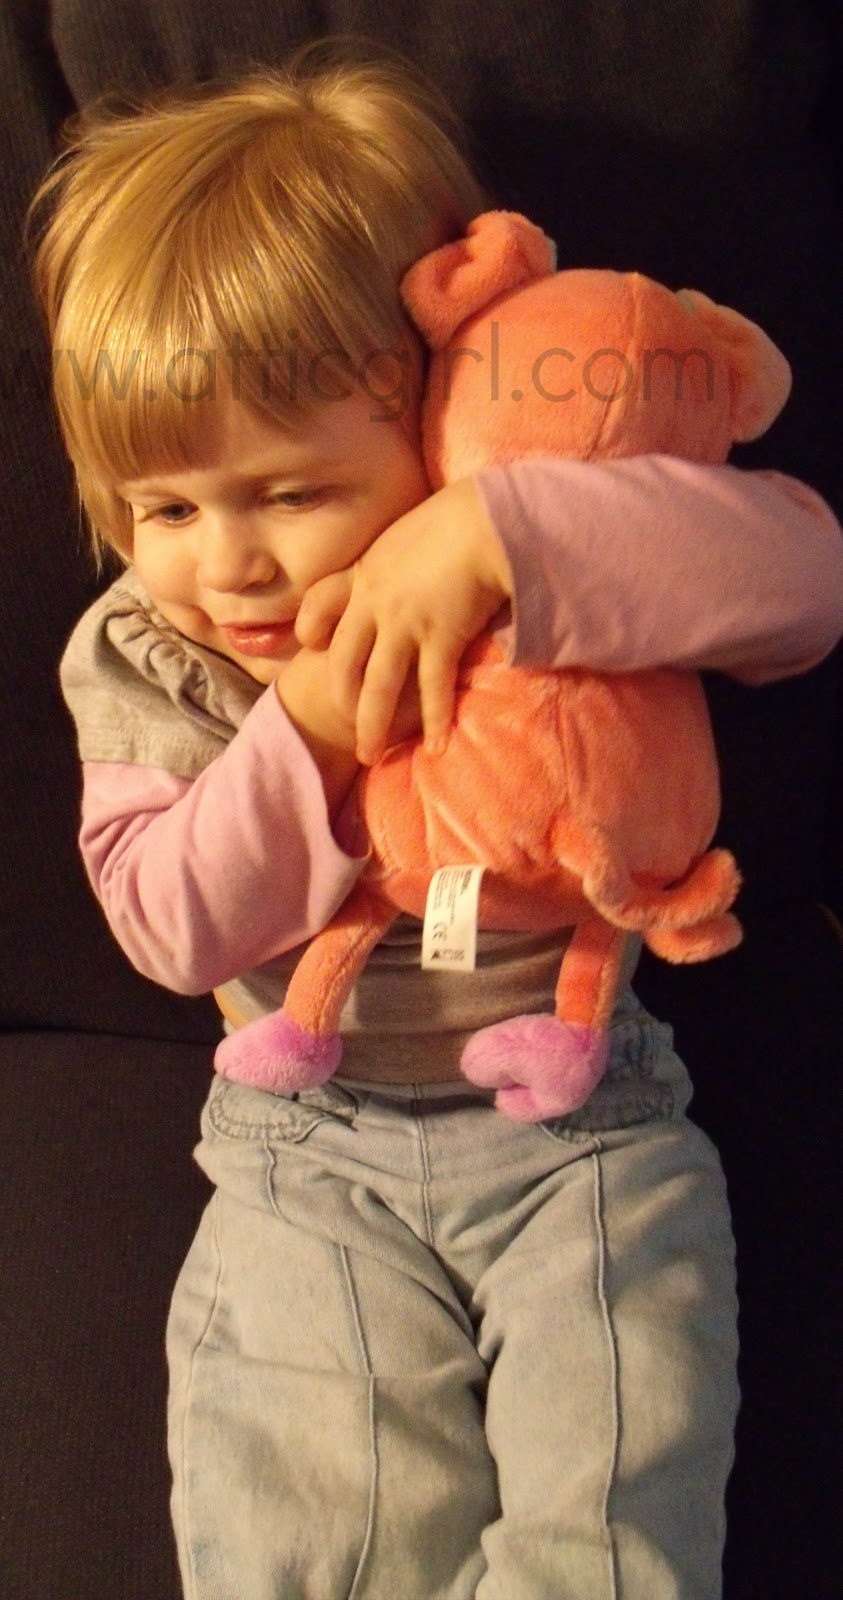 plush, nuby, stuffed animals, toddlers, babies, gifts